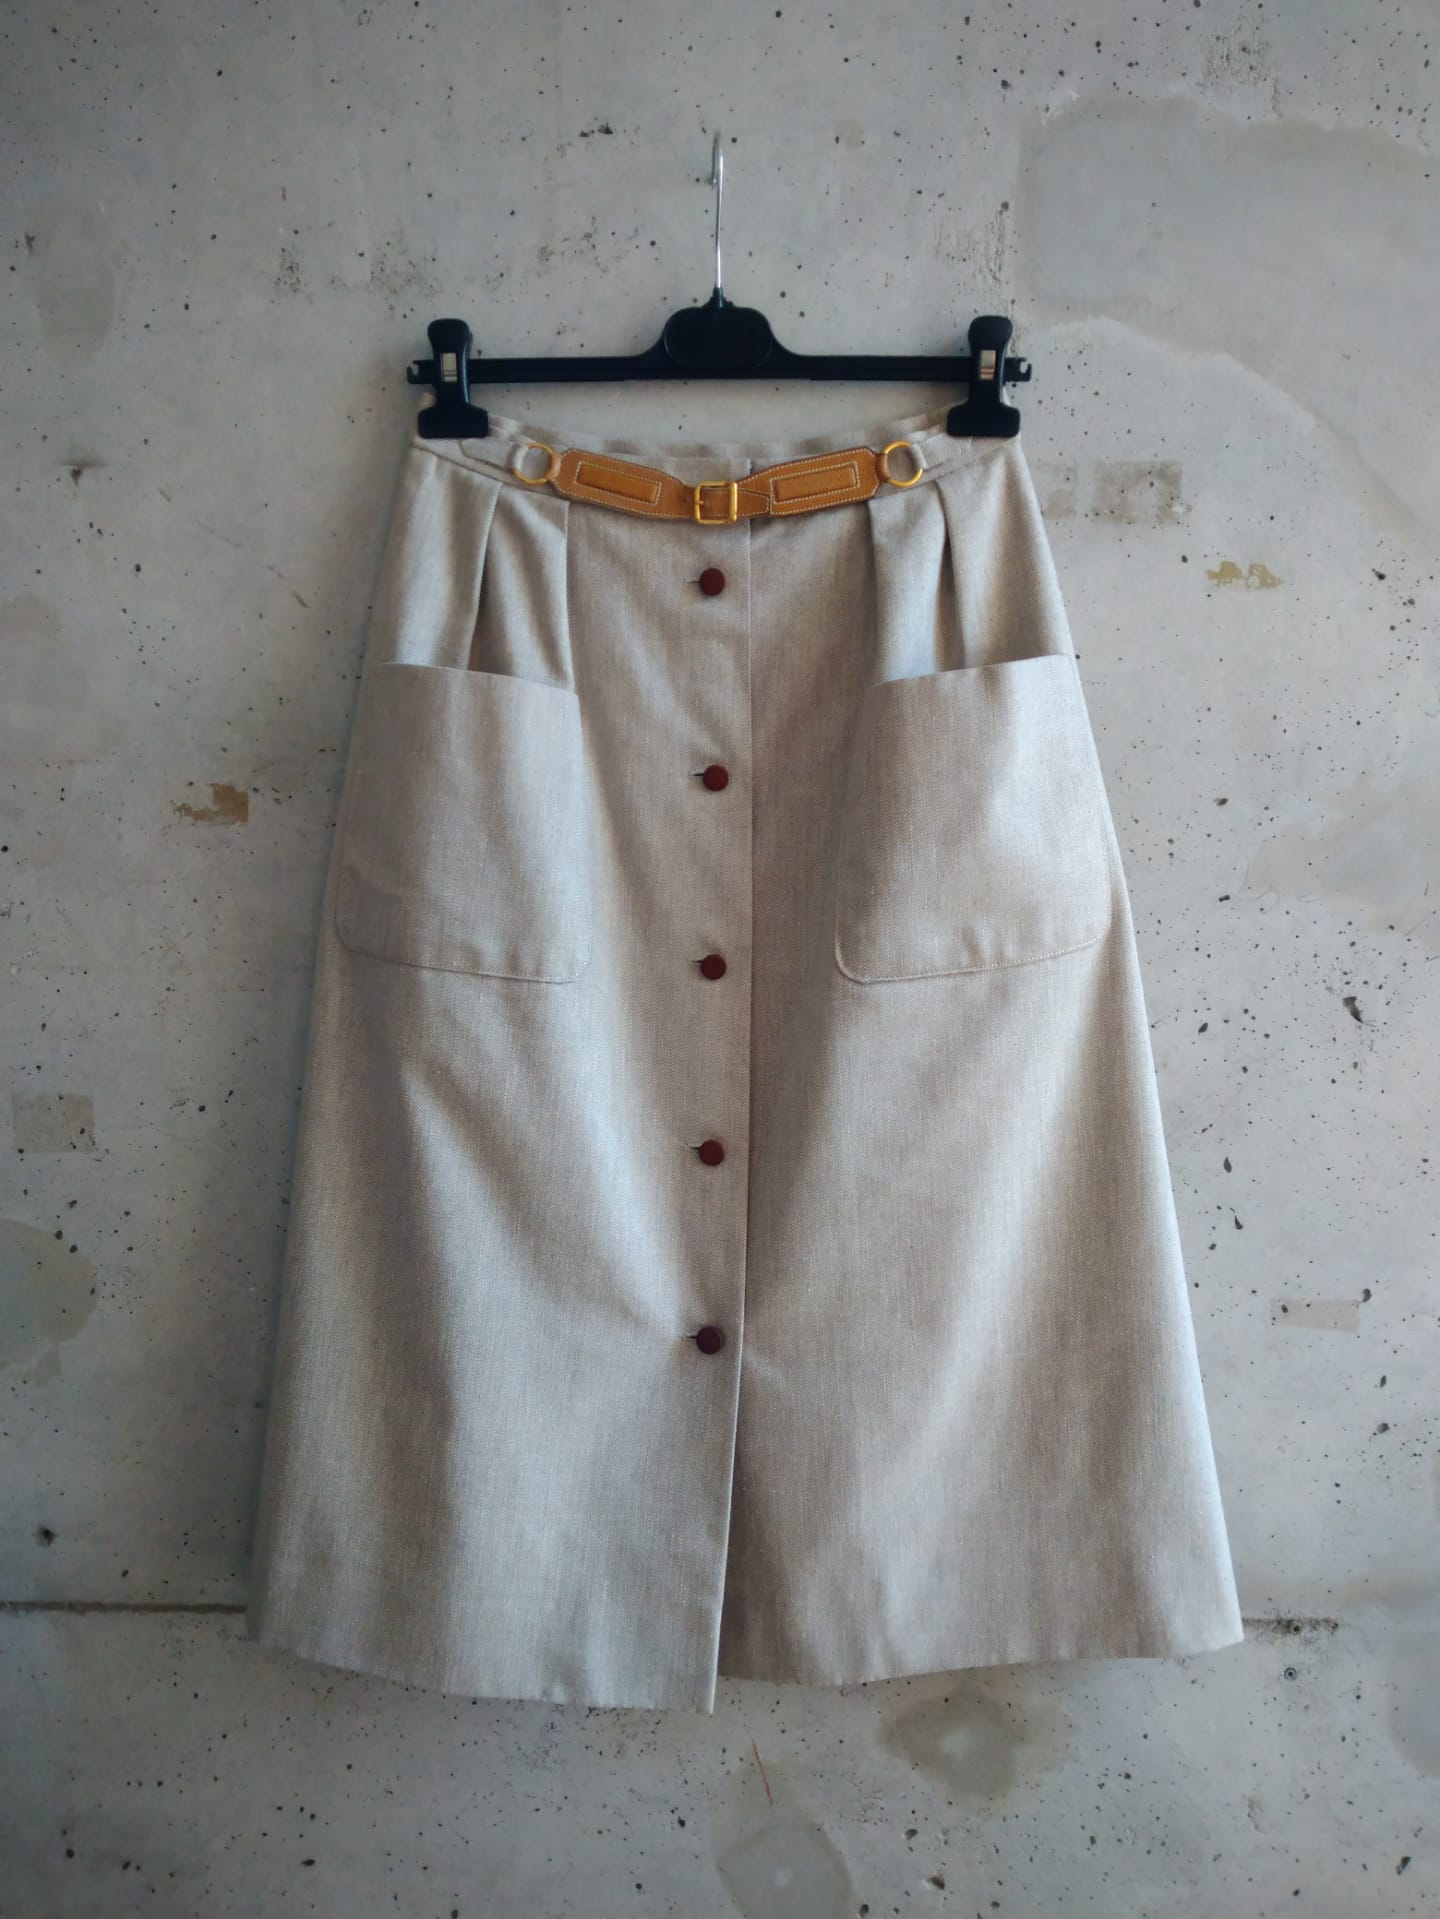 Hermes cotton skirt